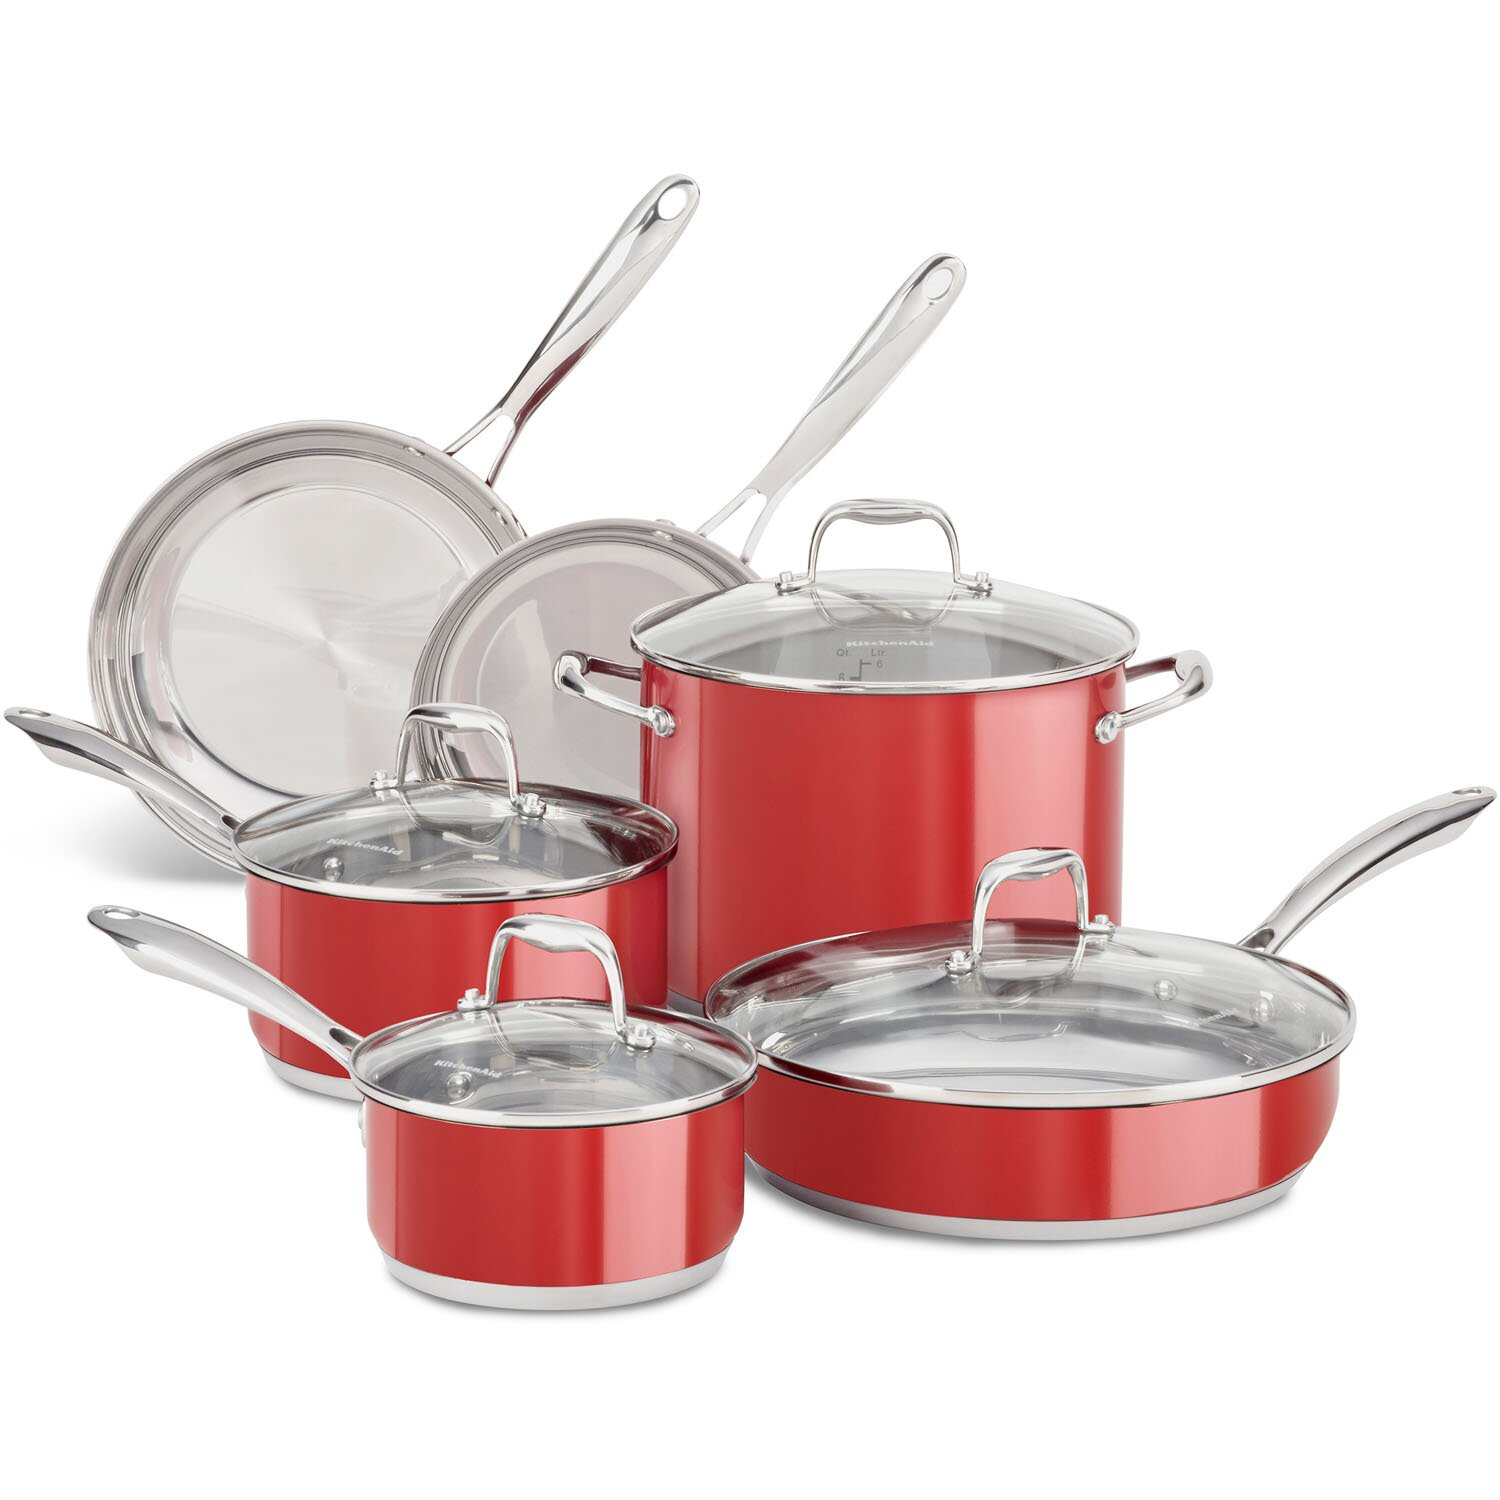 Kitchenaid 10 piece stainless steel cookware set reviews wayfair - Kitchen aid pan set ...